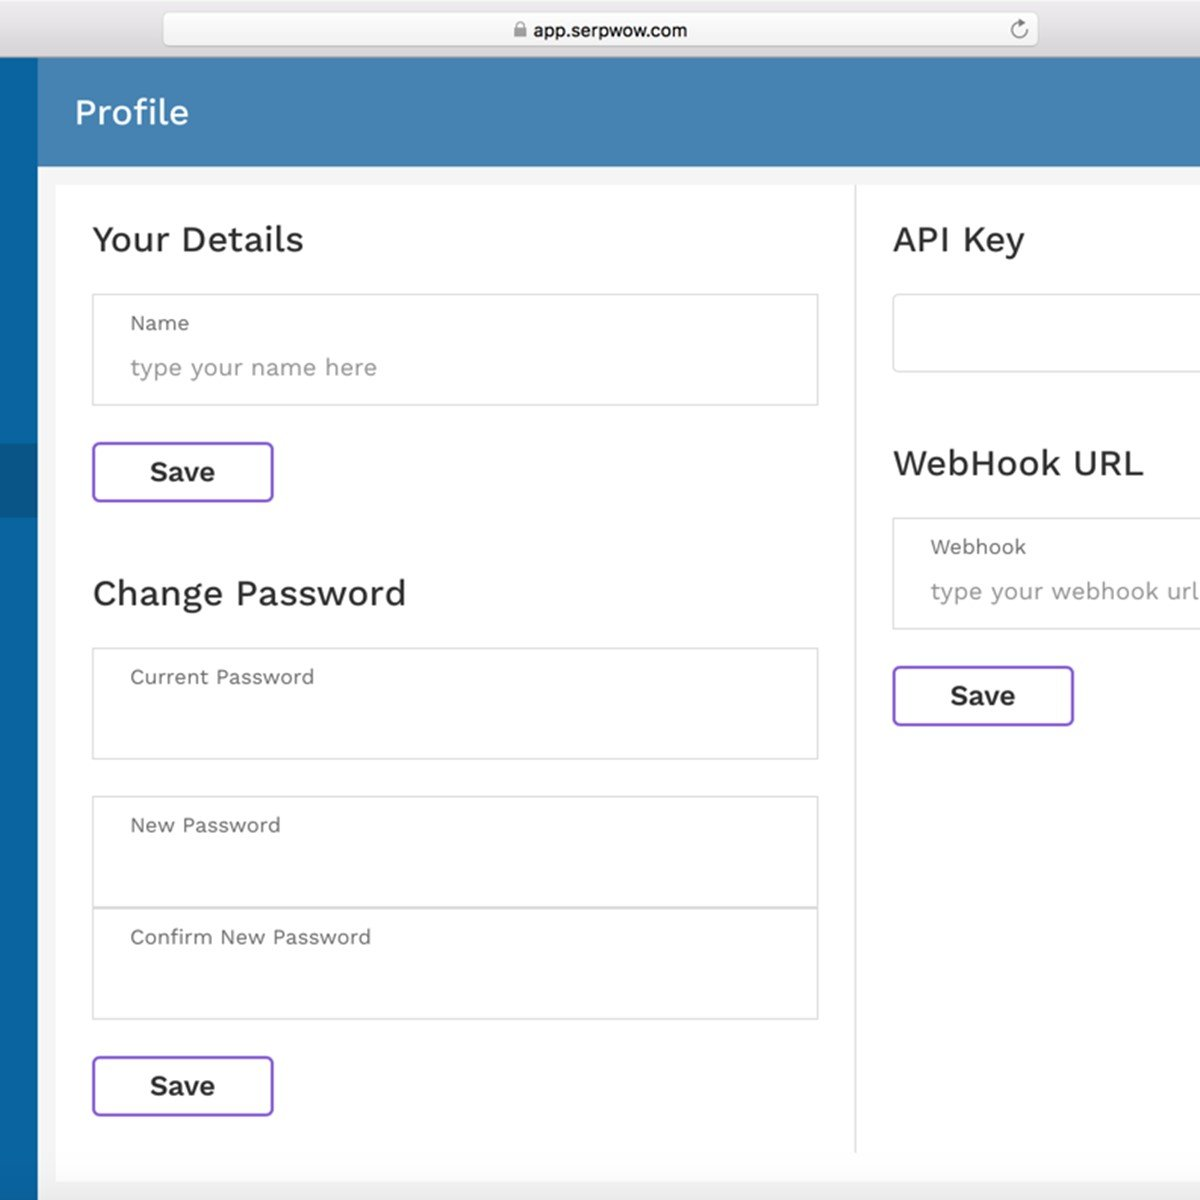 SerpWow - The Ultimate Search Engine Results API